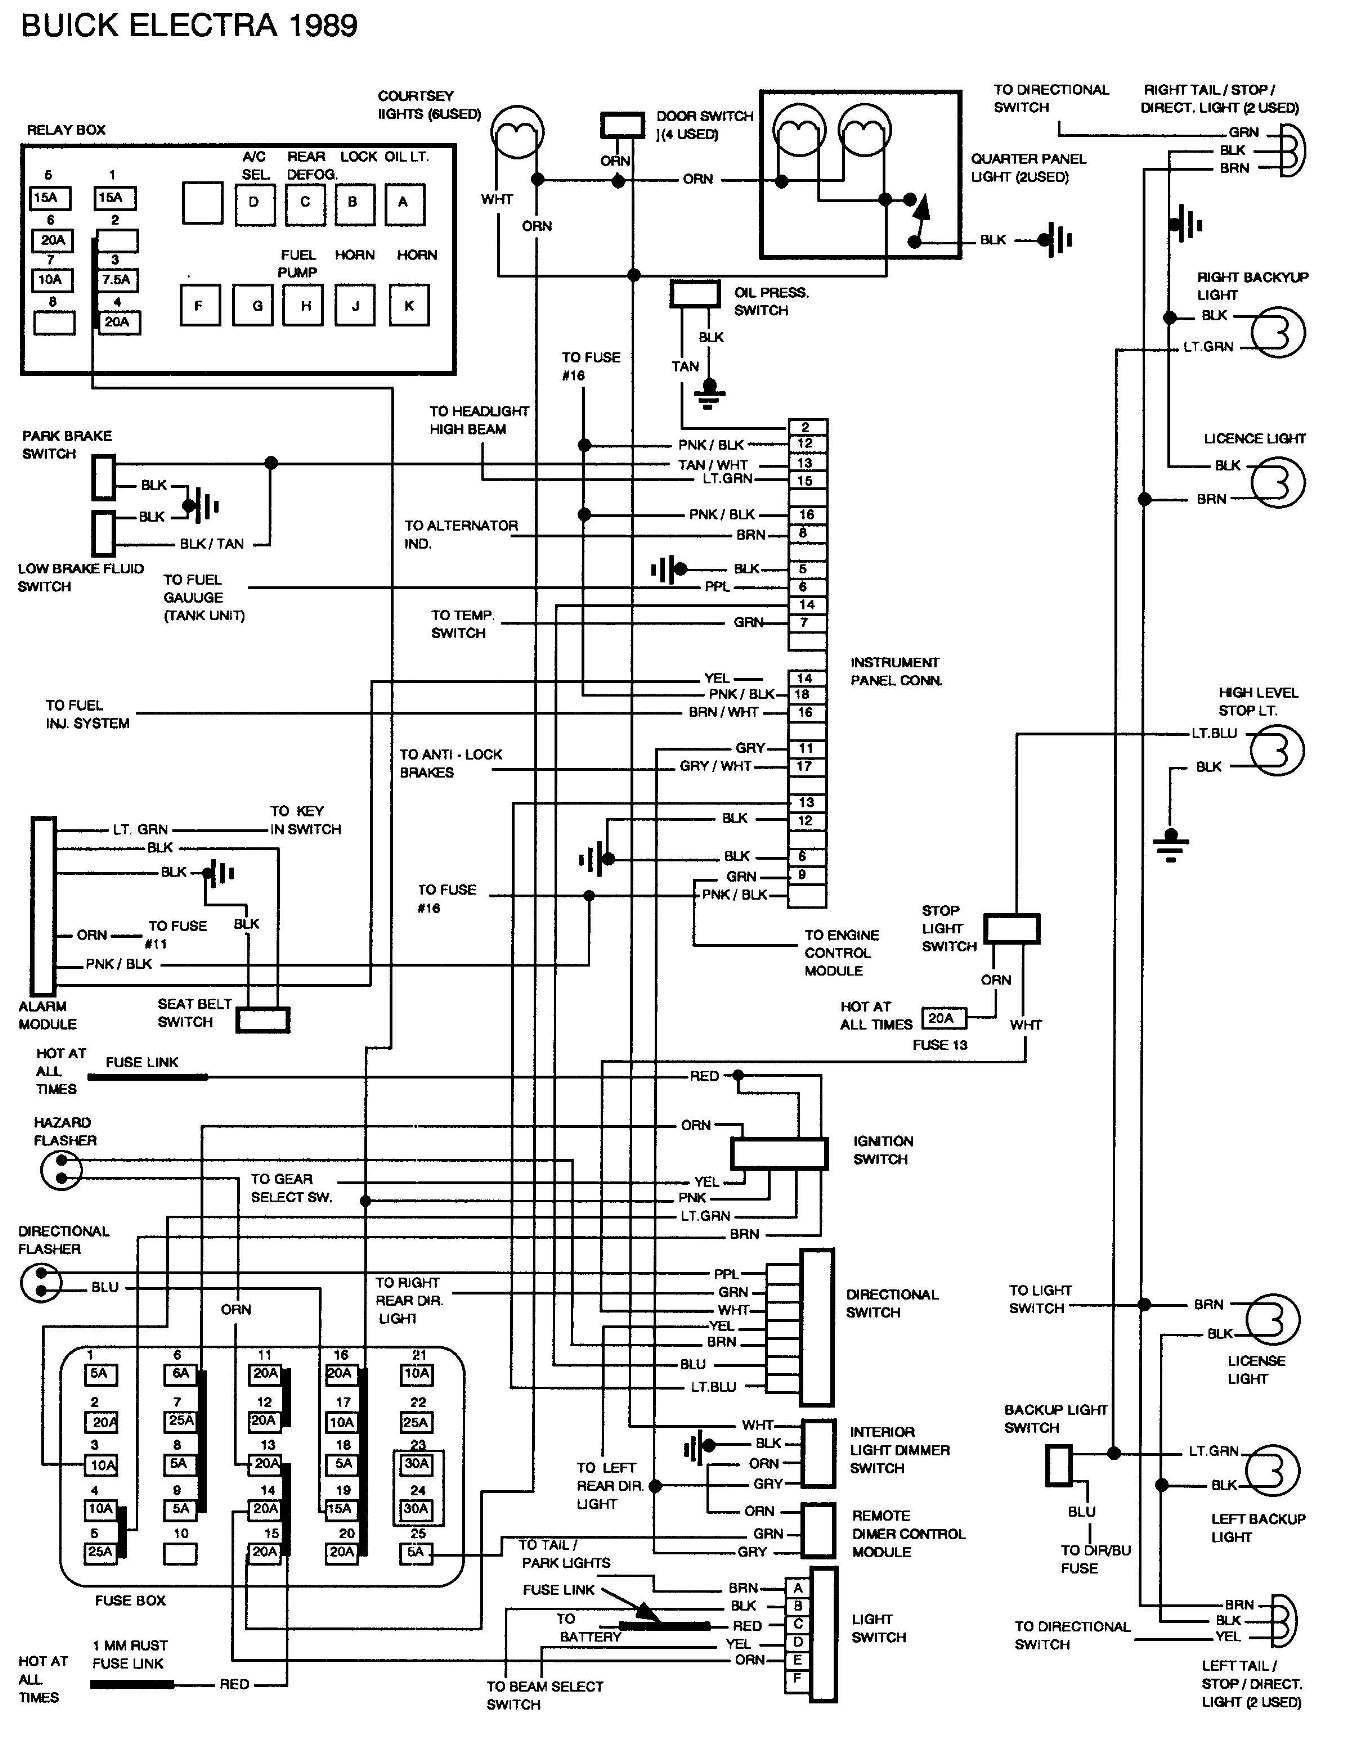 2001 Buick Lesabre Engine Diagram Free Buick Wiring Diagrams Data Schematics Wiring Diagram • Of 2001 Buick Lesabre Engine Diagram